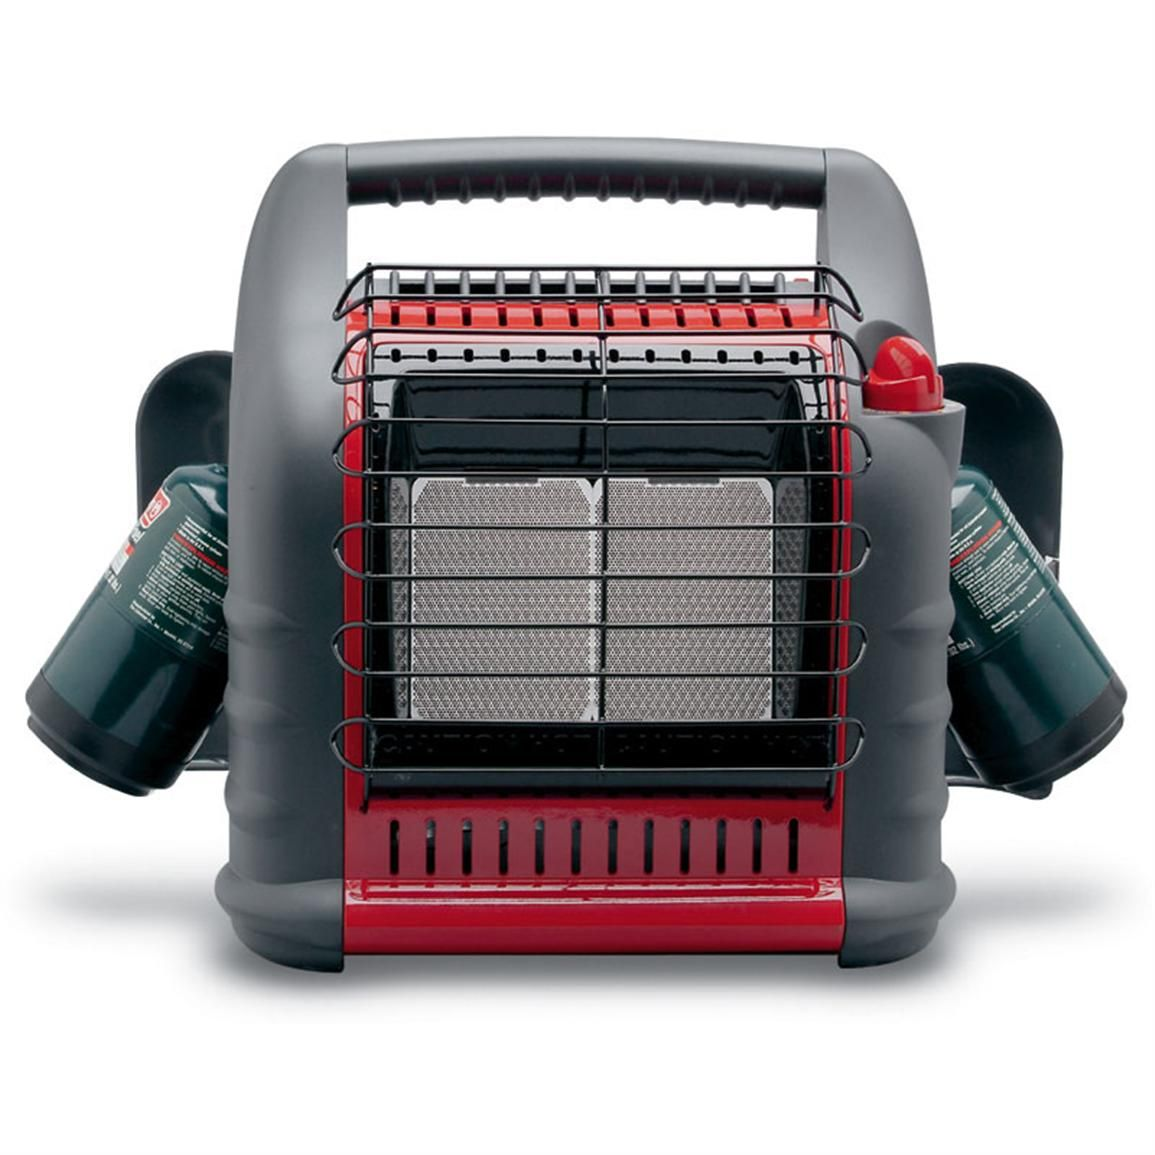 Mr. Heater® Big Buddy Most reliable and safe portable